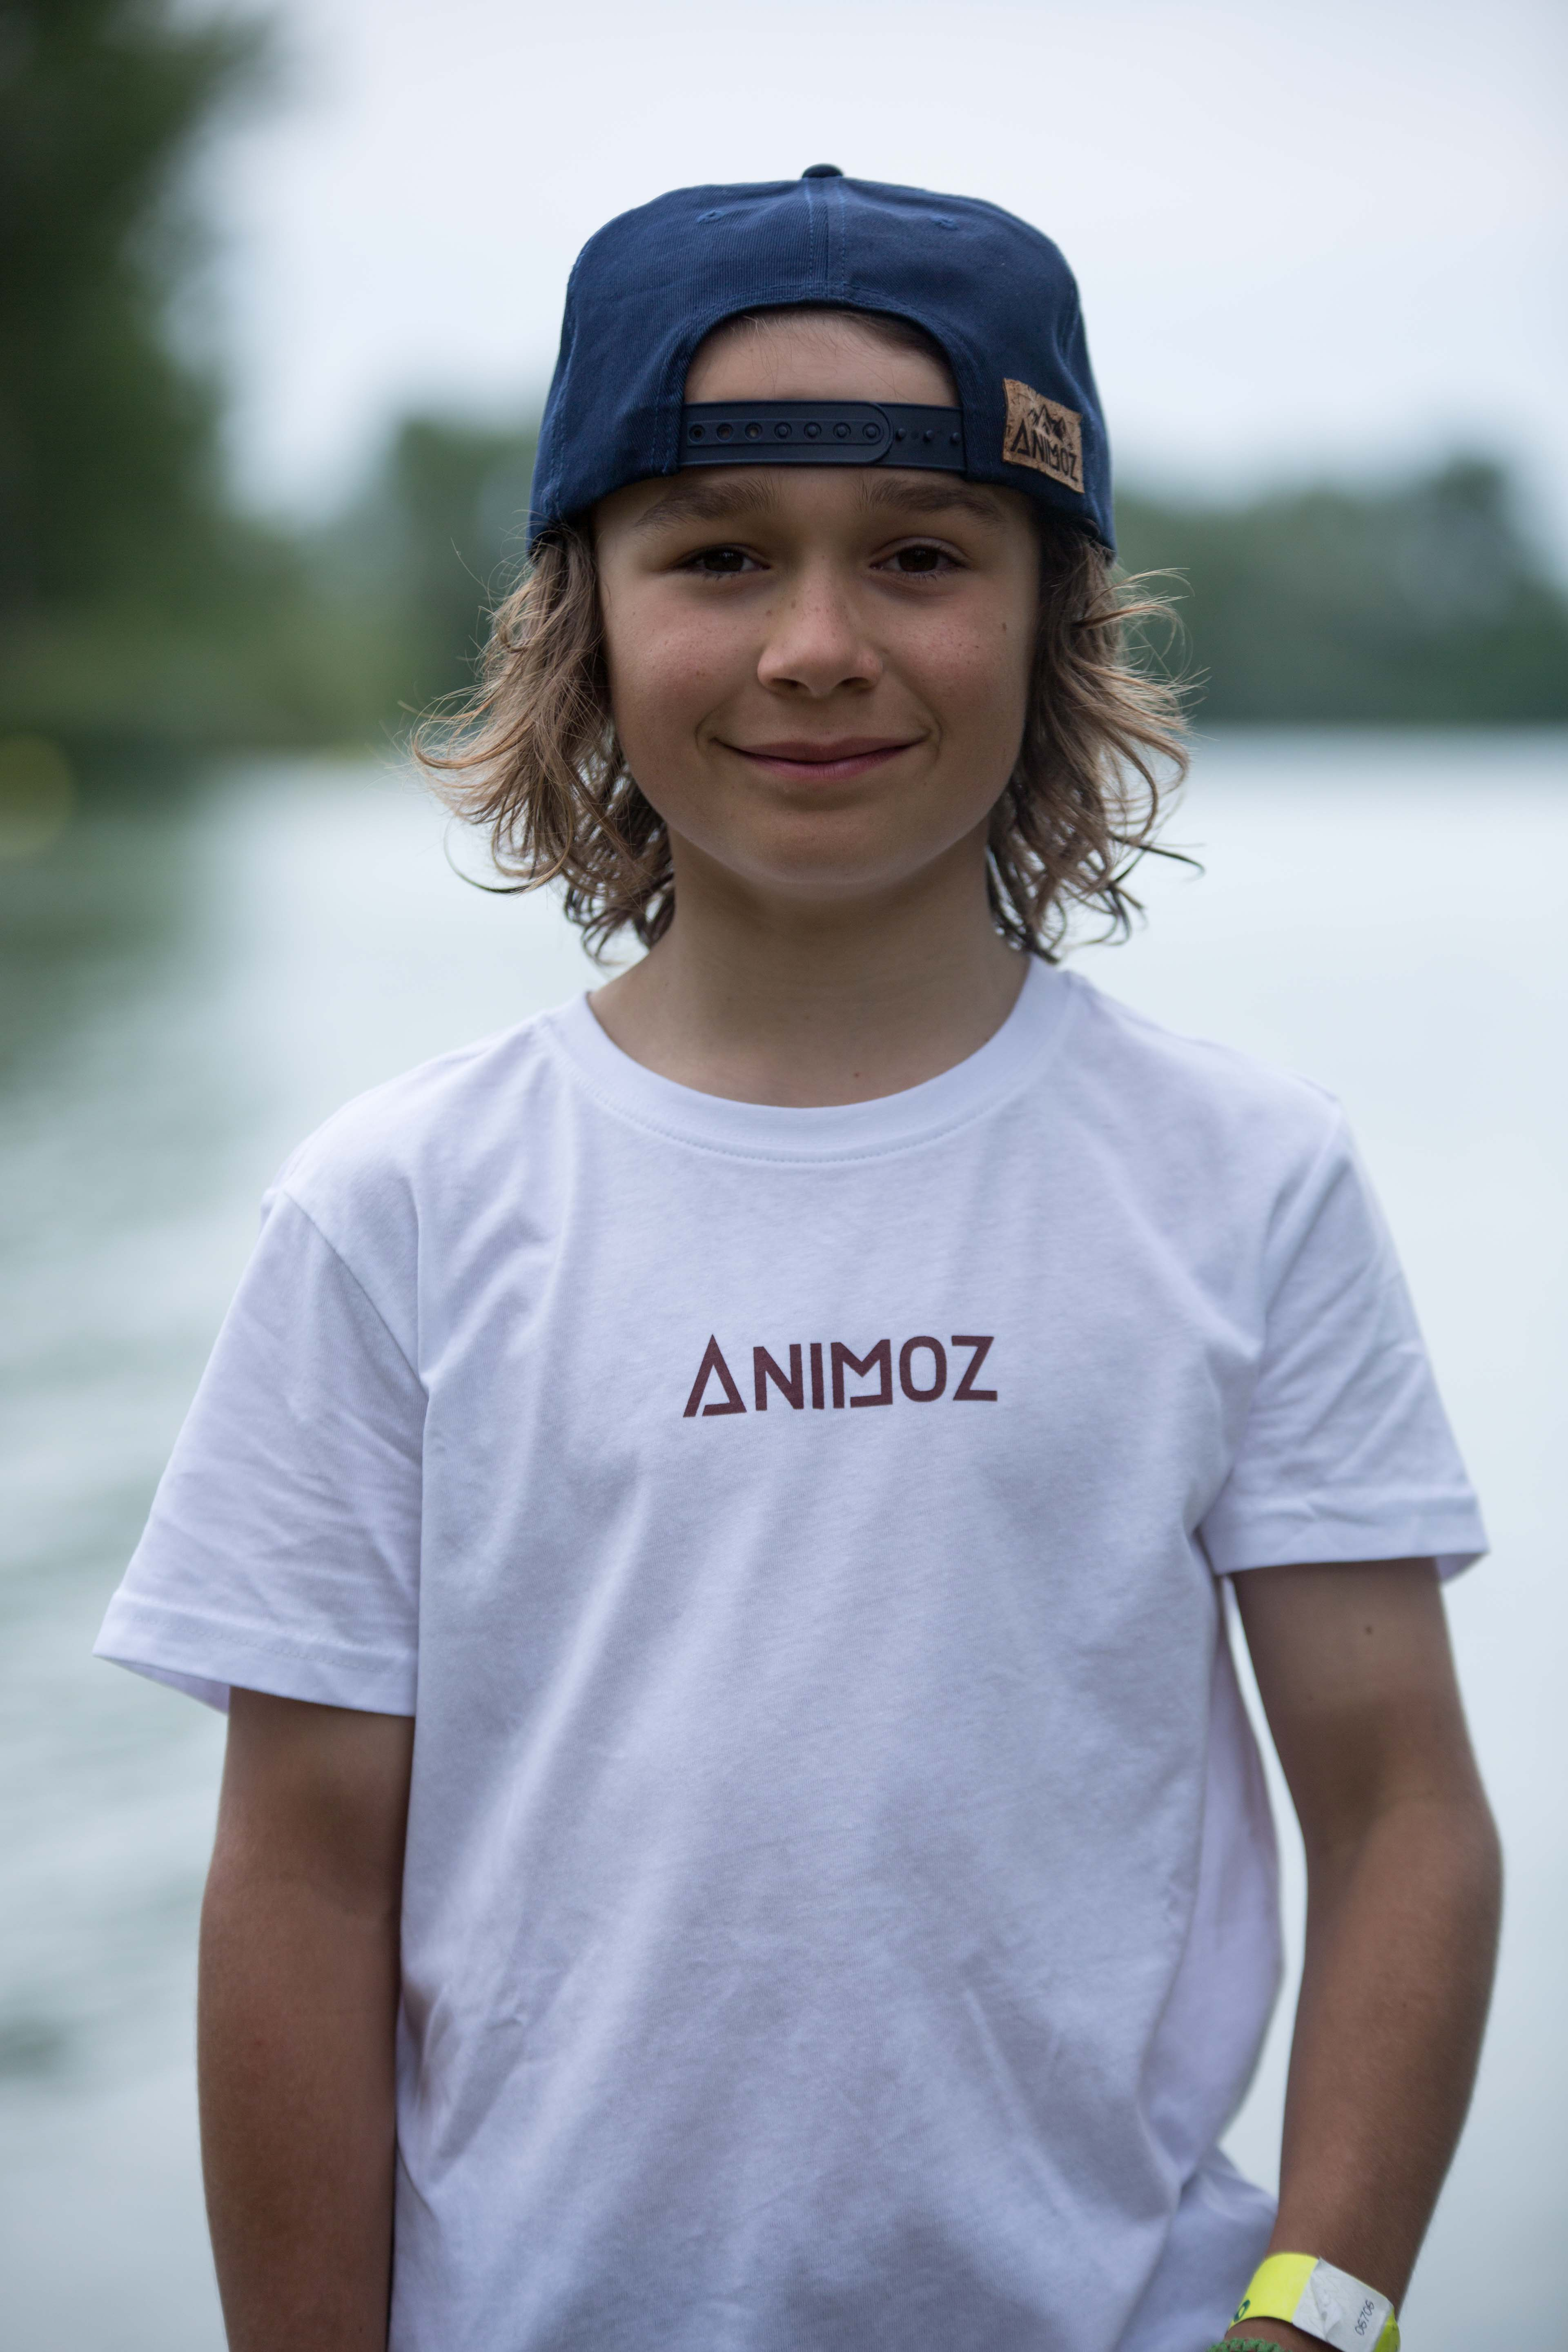 Animoz Clothing - Clfd Capture | Enzo Habrial